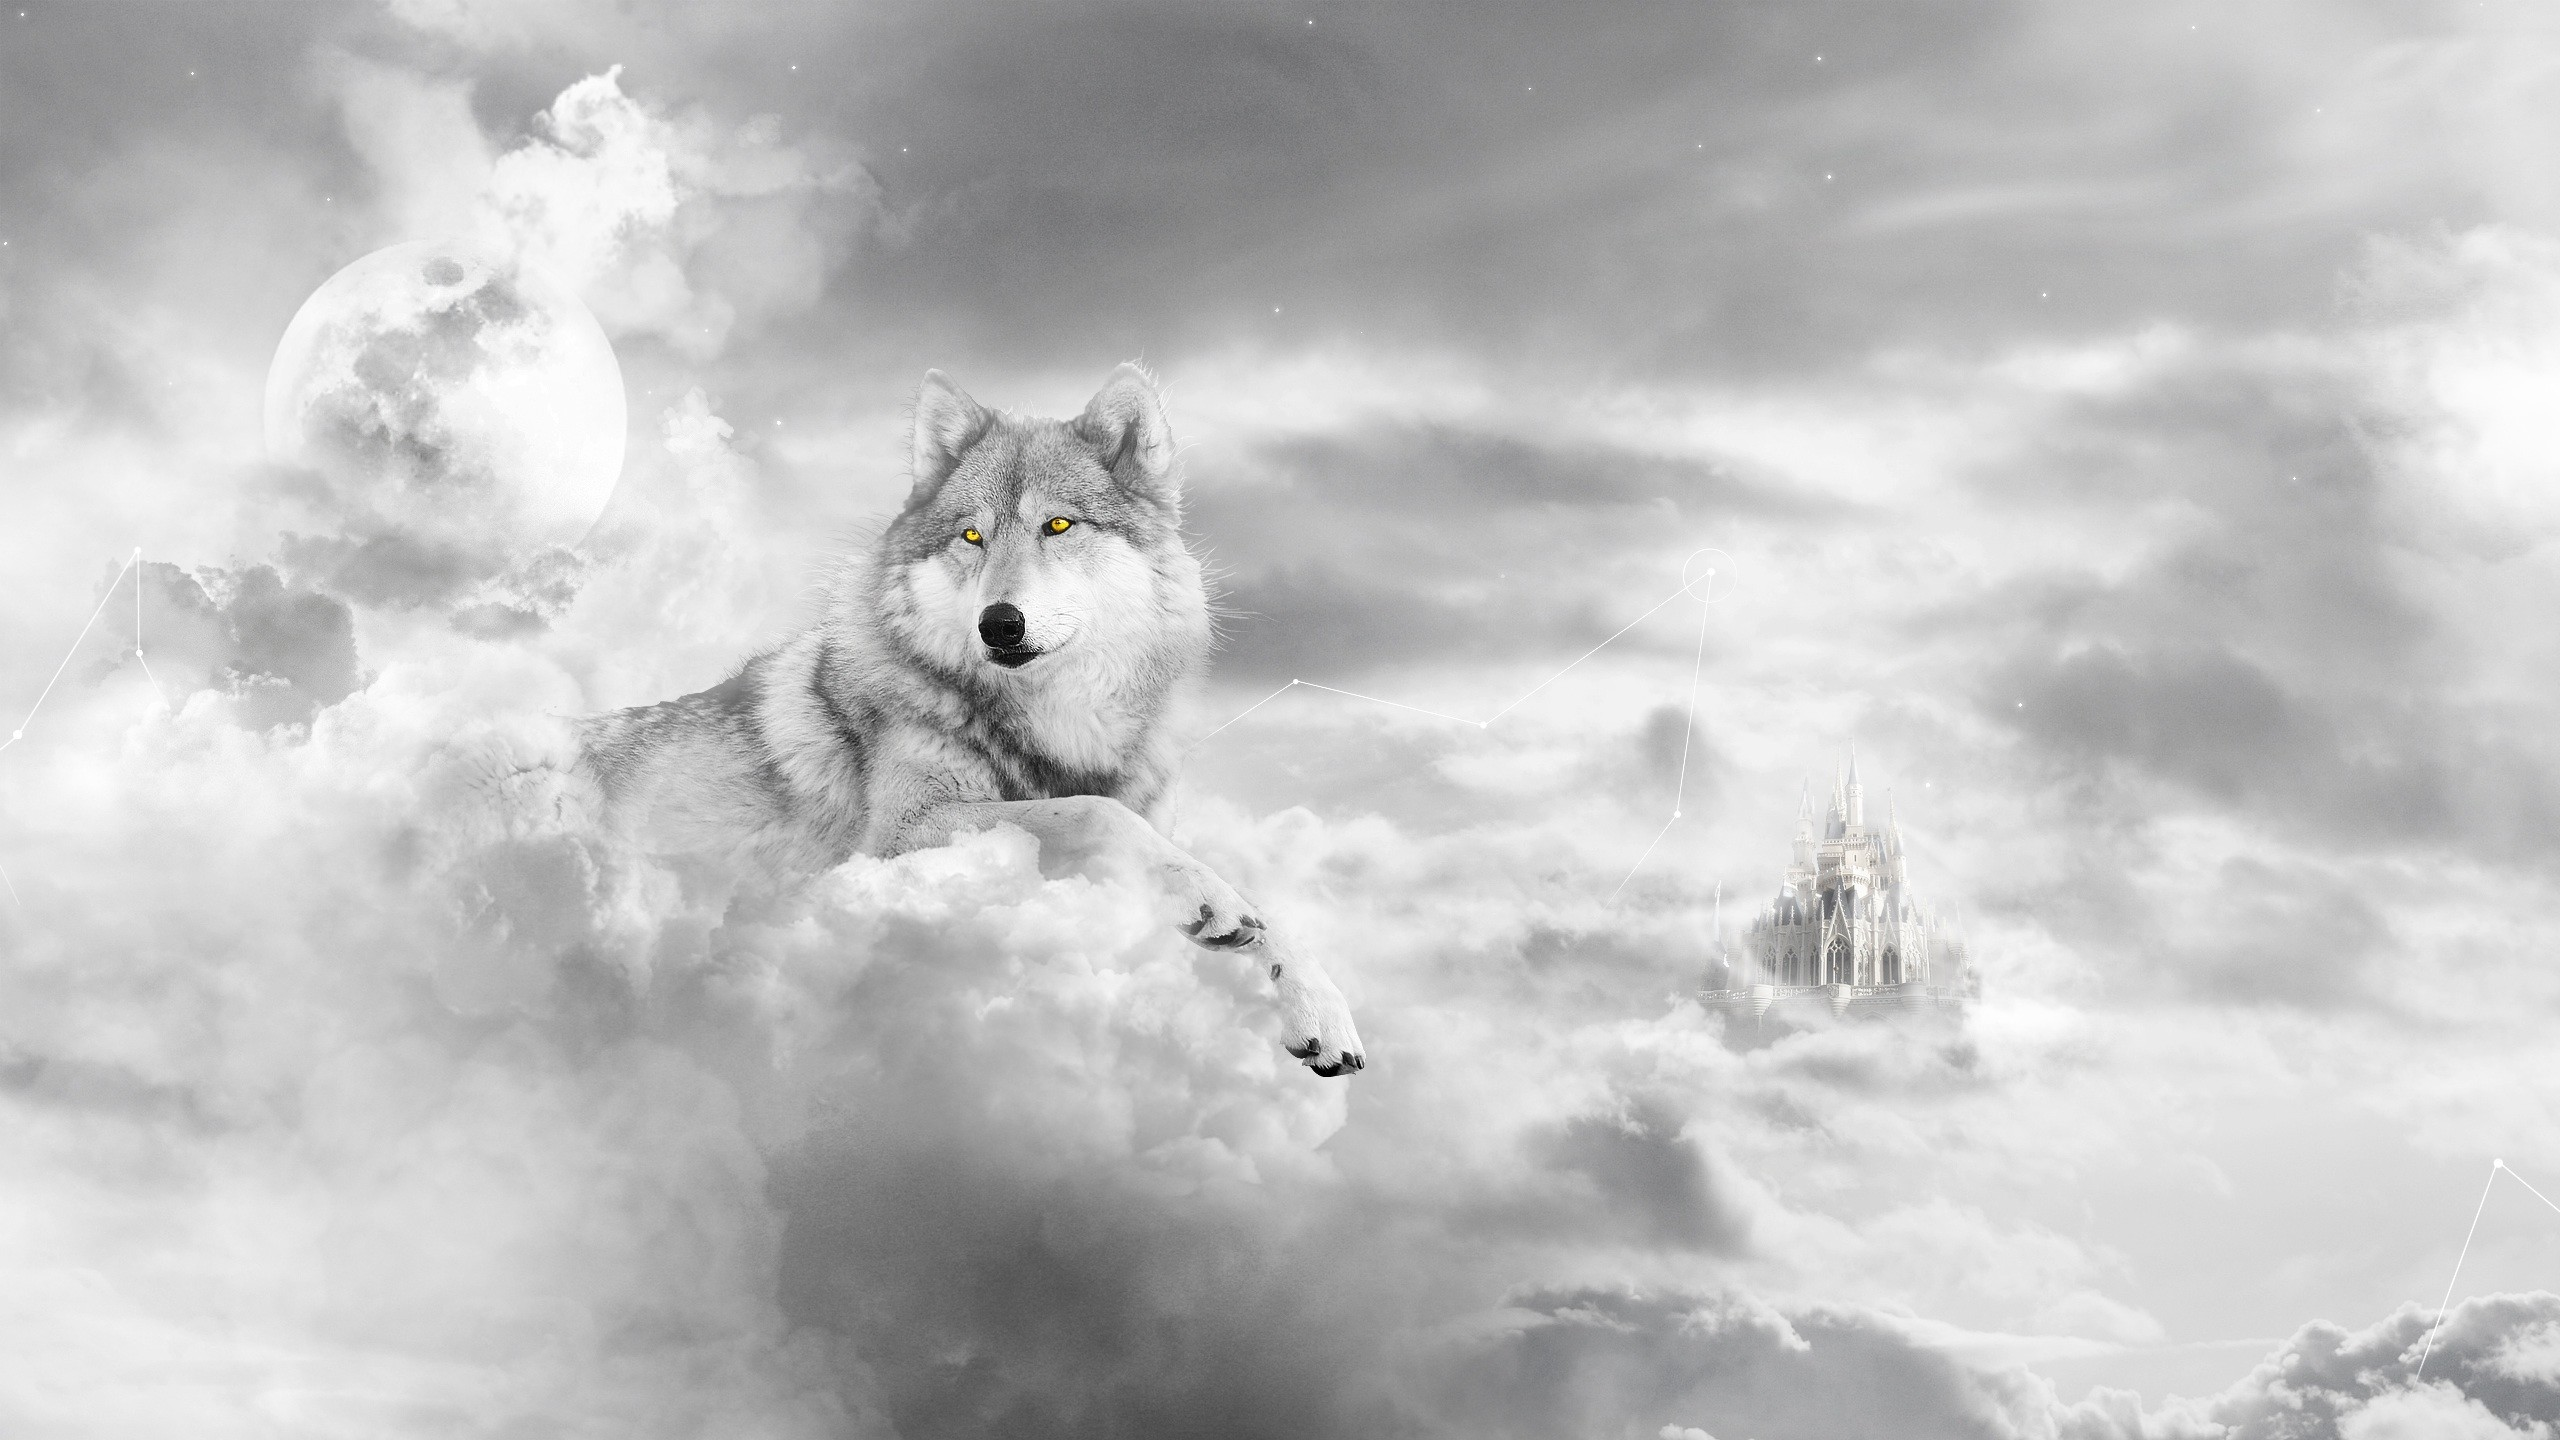 2560x1440 Animal - Wolf Artistic Castle Cloud Dog Black & White Animal Moon Fantasy  White Wallpaper